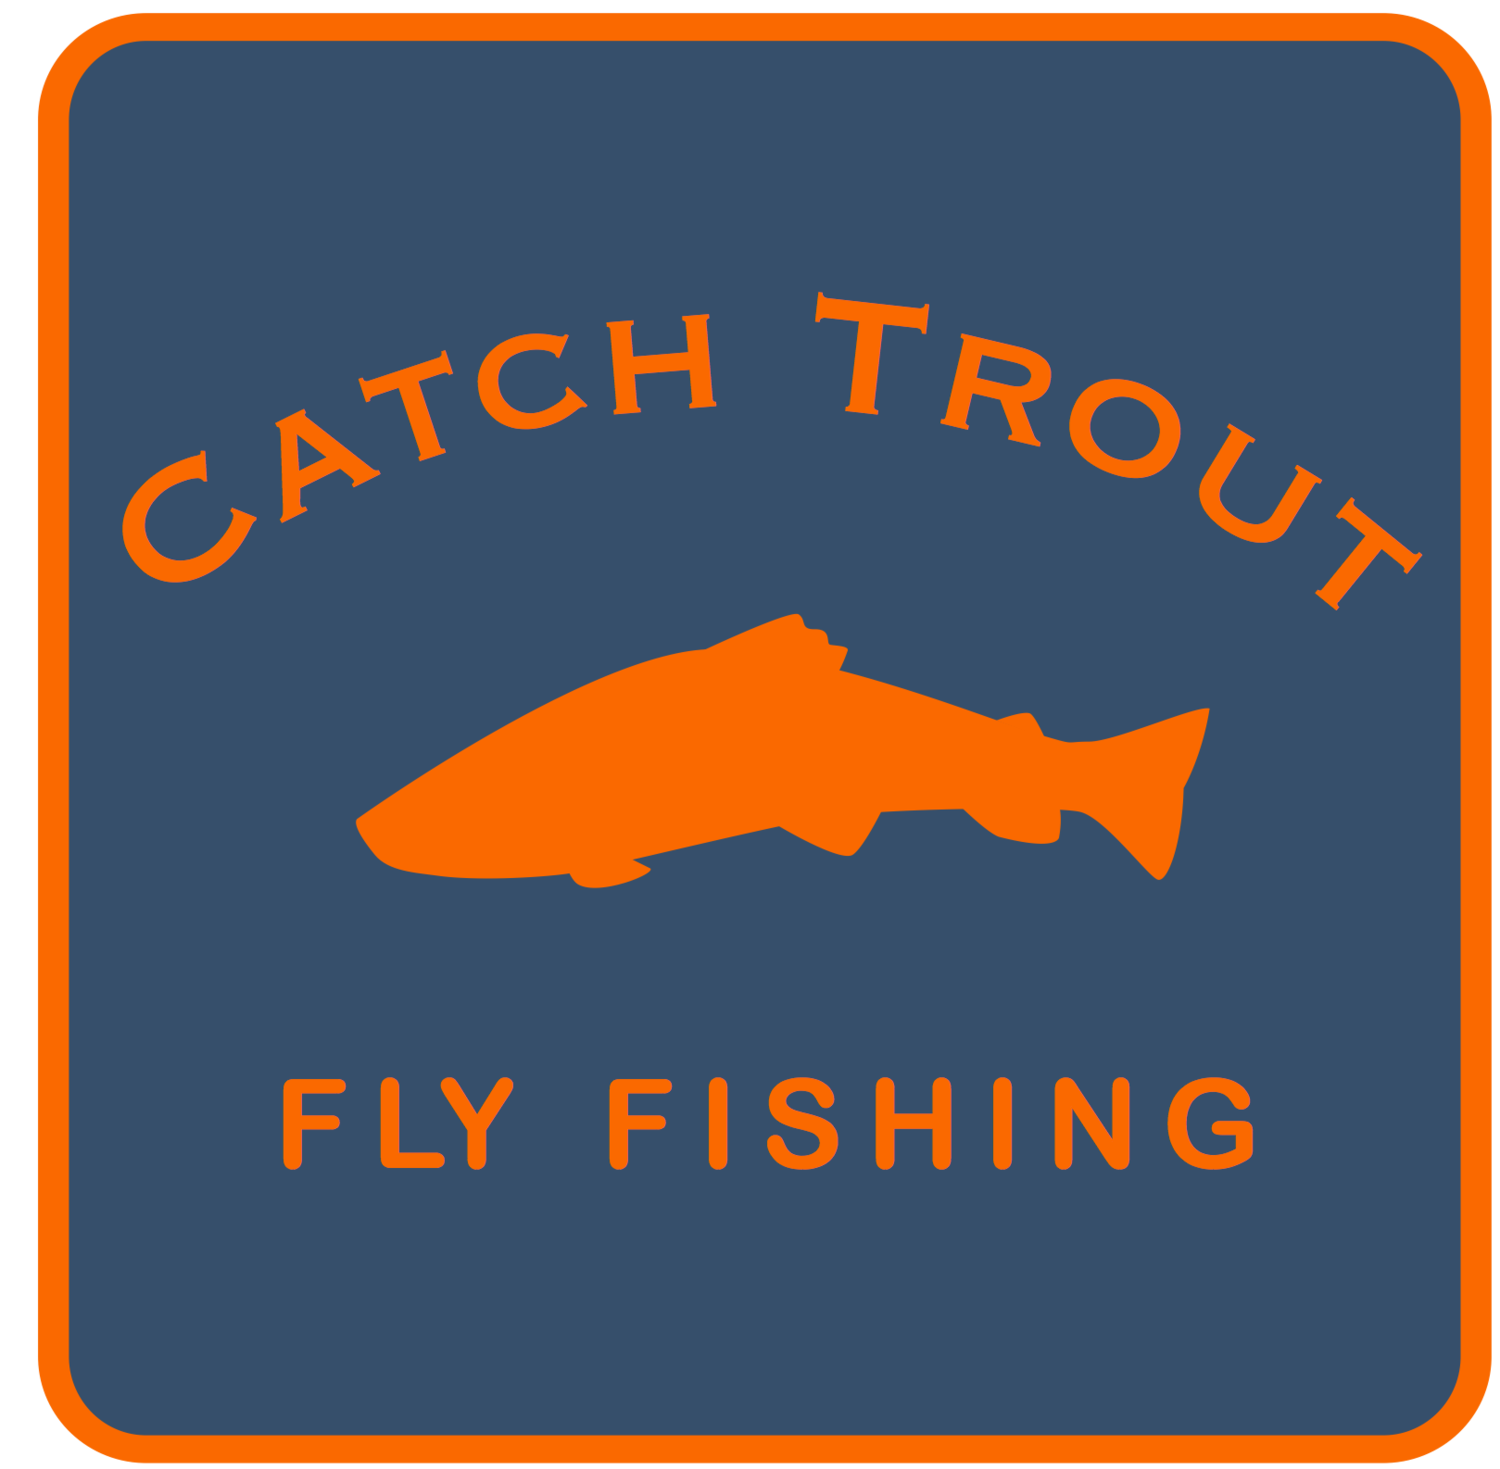 Catch Trout